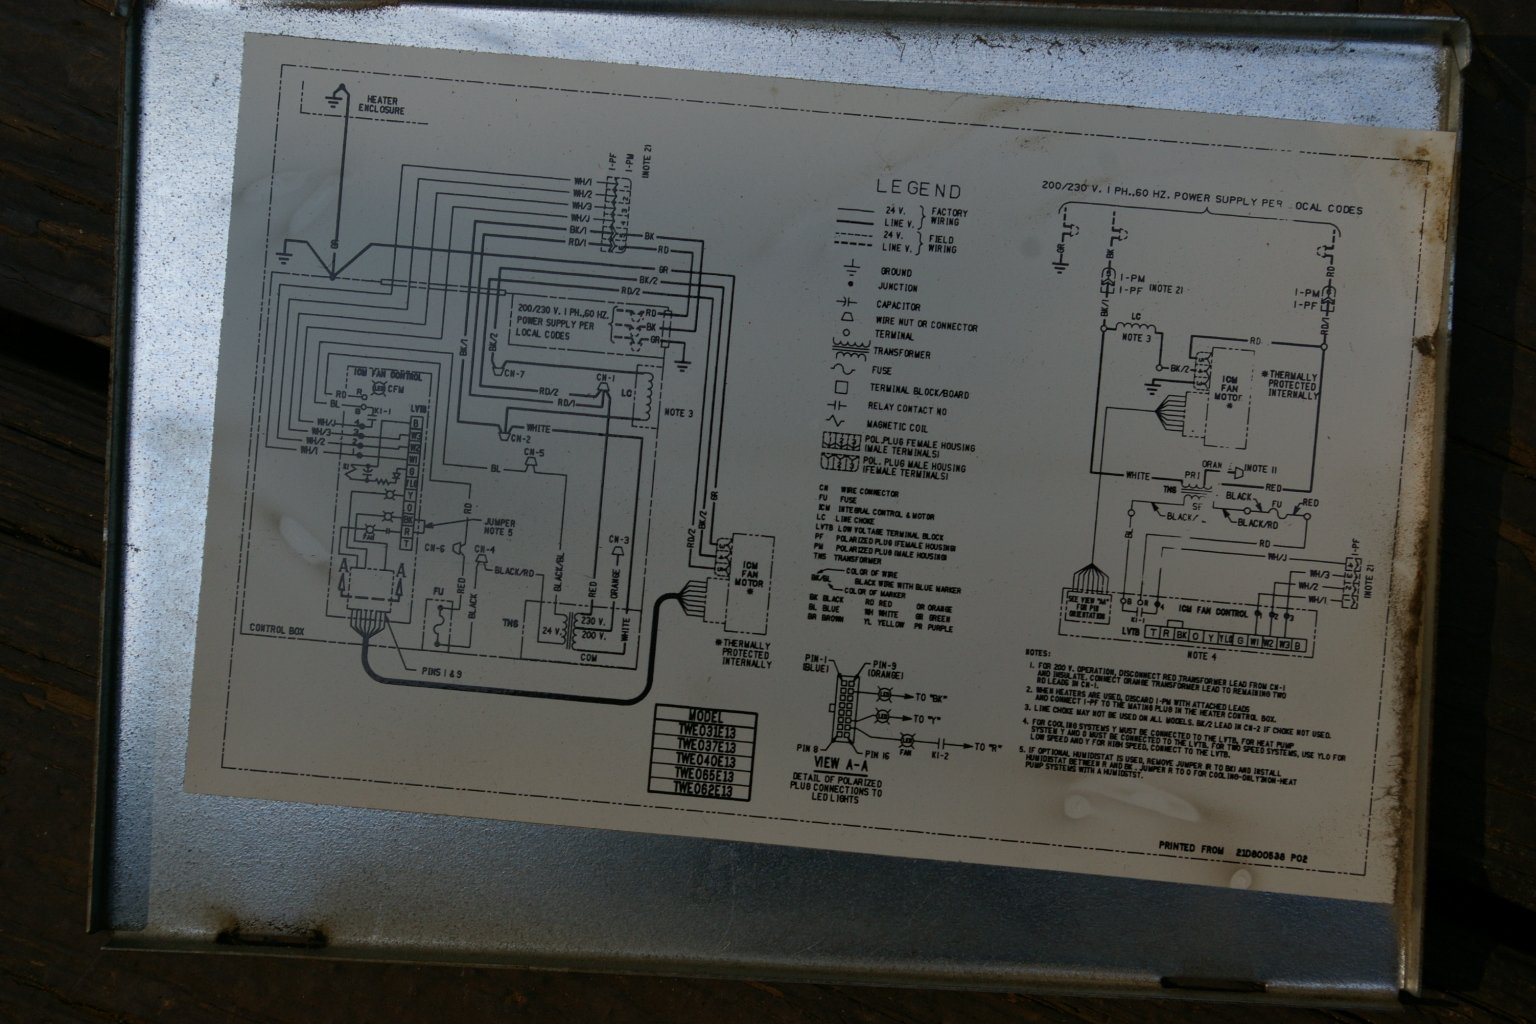 2013 08 29_214357_imgp2552 trane wiring diagram efcaviation com Trane Thermostat Wiring at nearapp.co